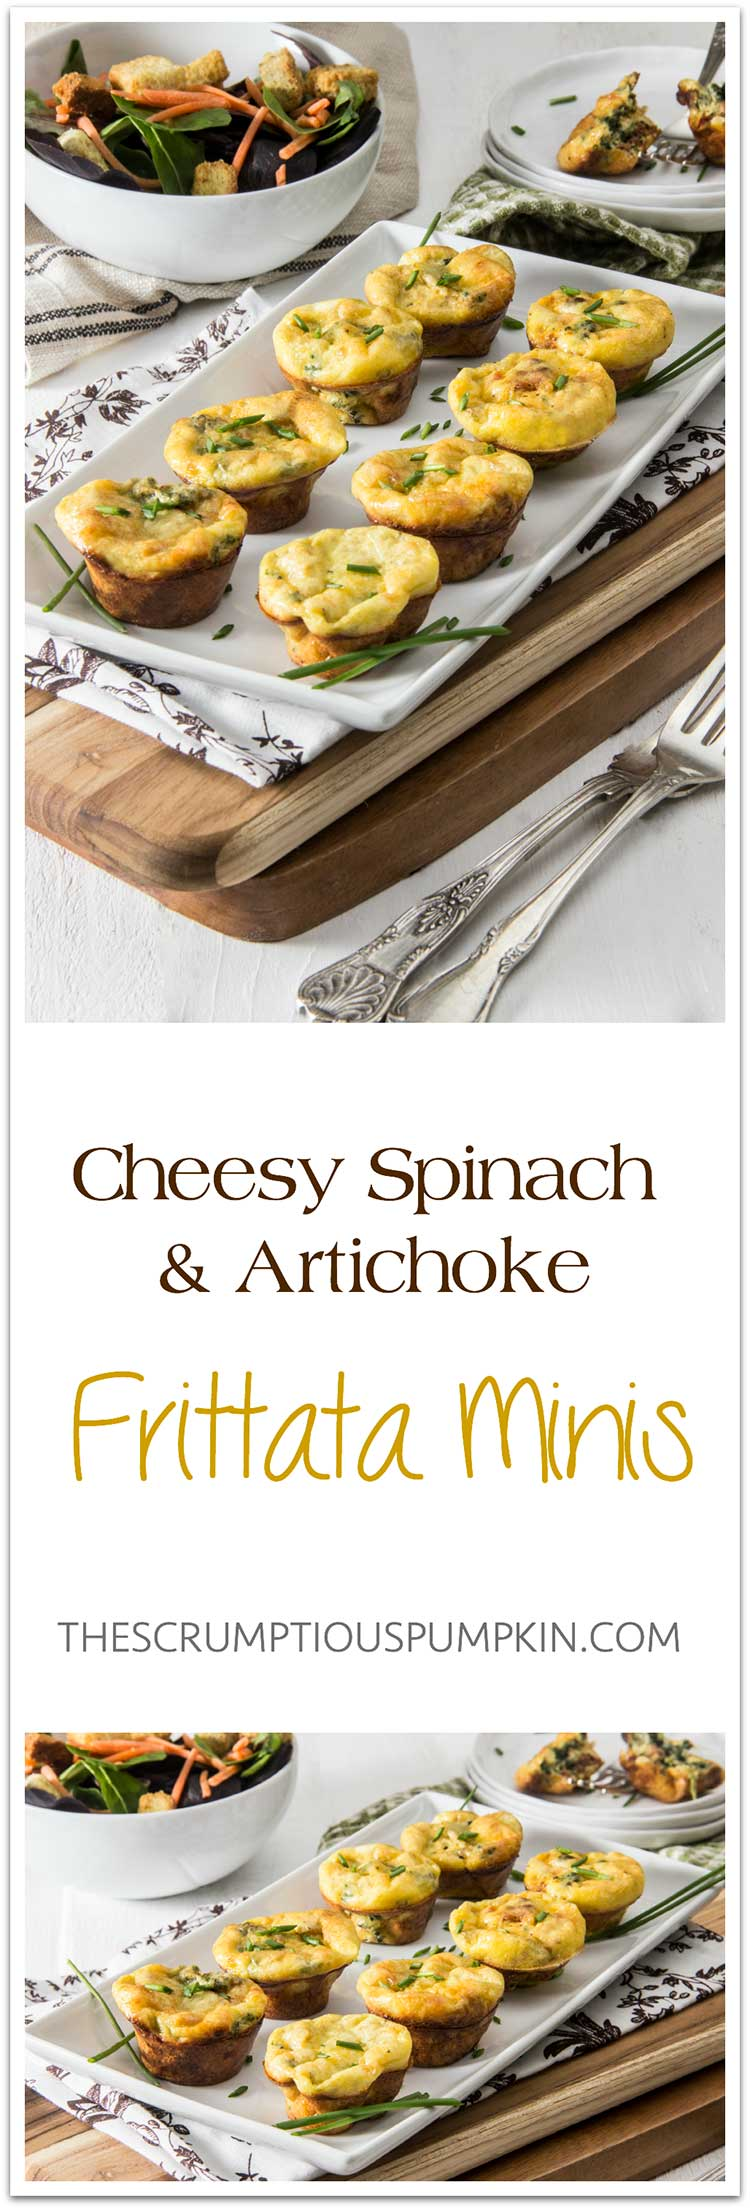 Cheesy-Spinach-and-Artichoke-Frittata-Minis